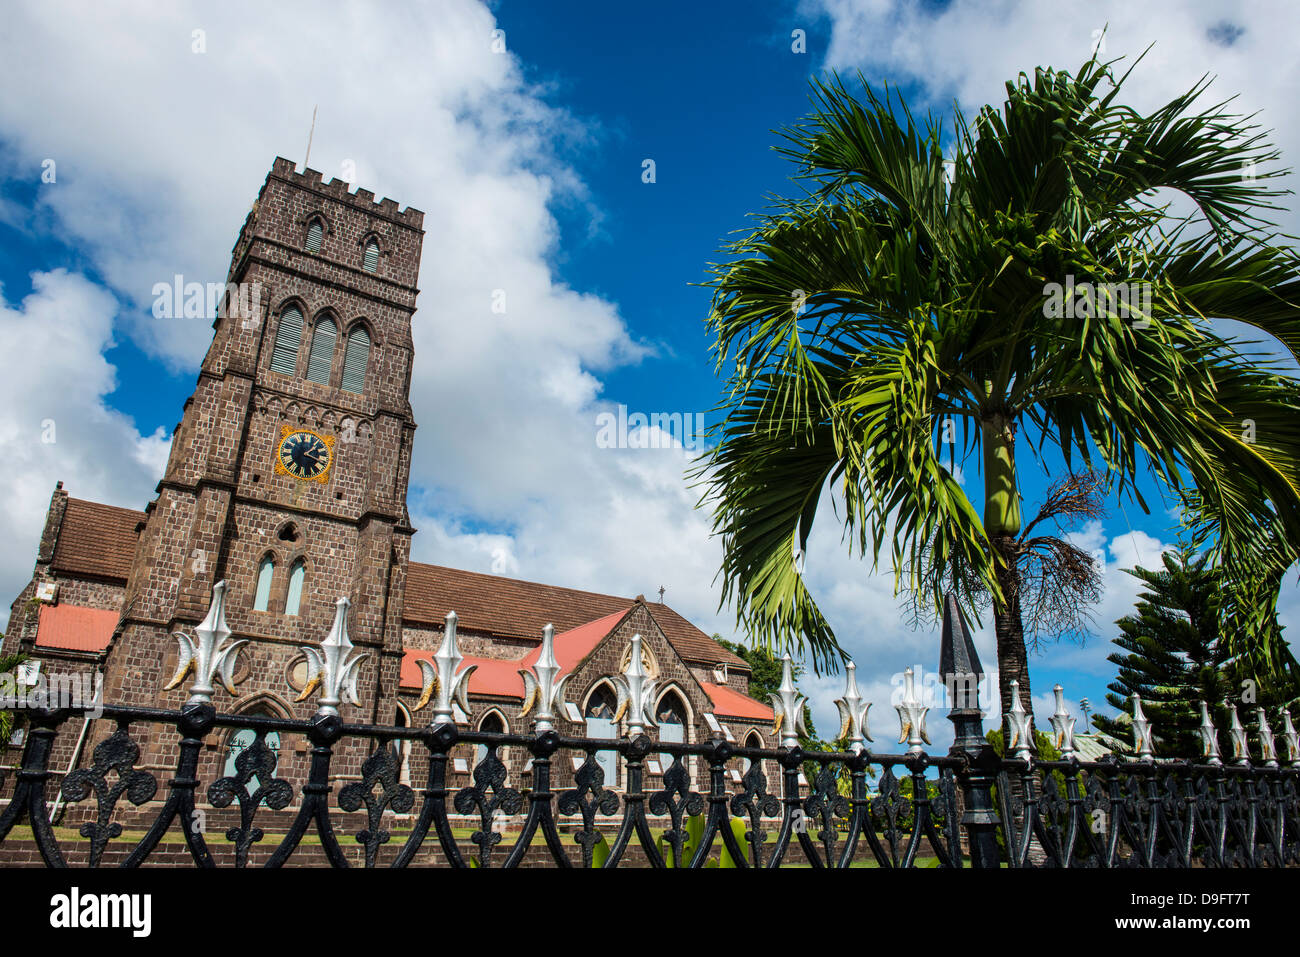 St. Johns Anglican church in Basseterre, St. Kitts, St.Kitts and Nevis, Leeward Islands, West Indies, Caribbean - Stock Image